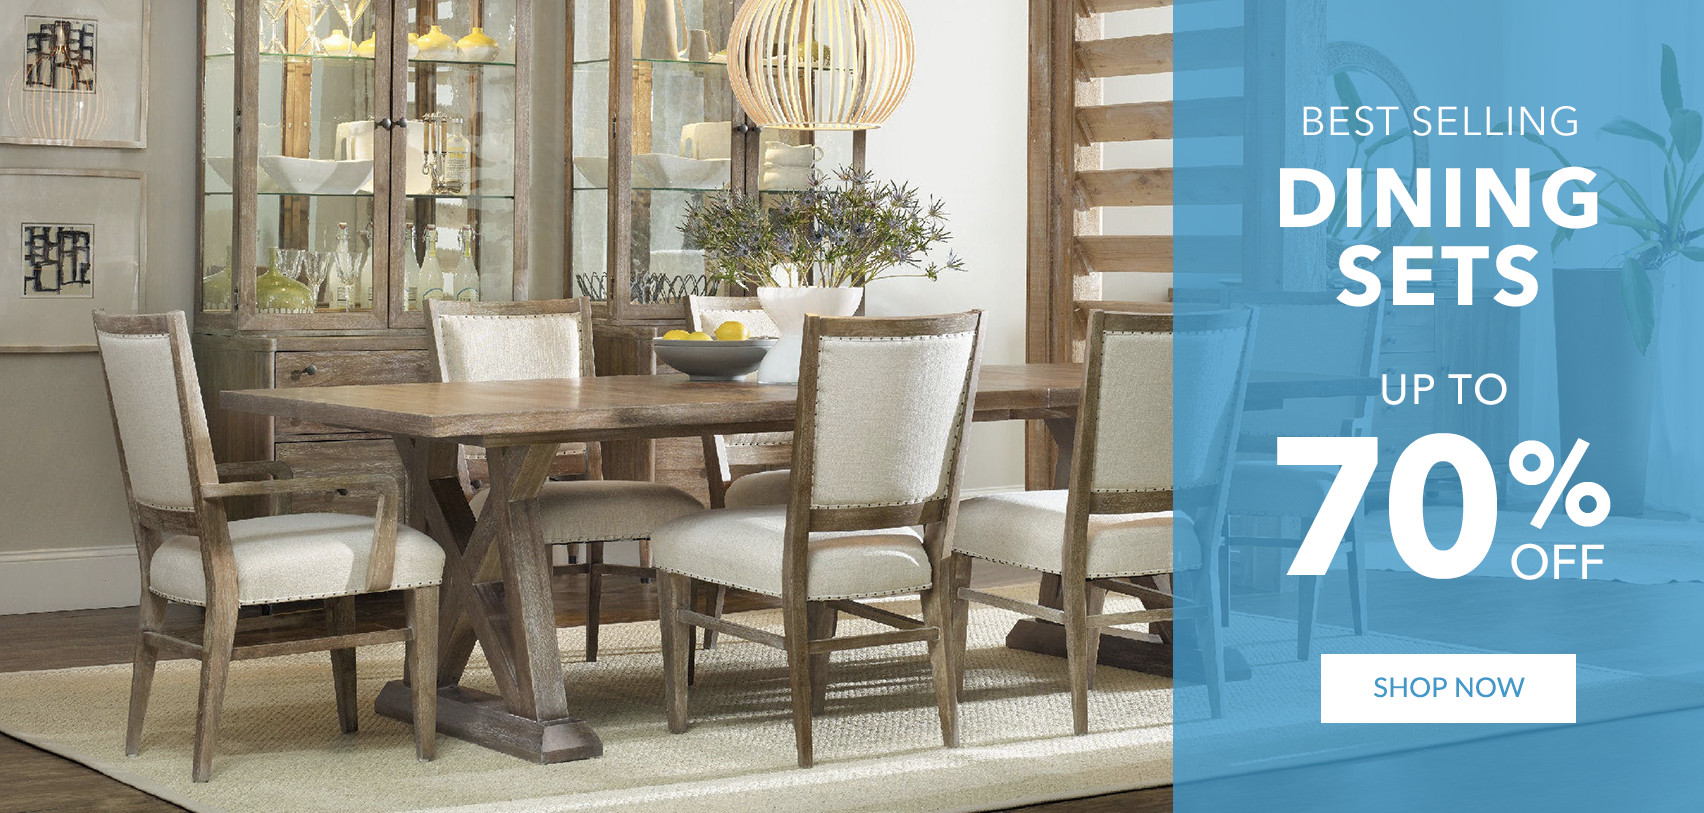 kitchen dining PC kitchen chairs cheap Related Categories